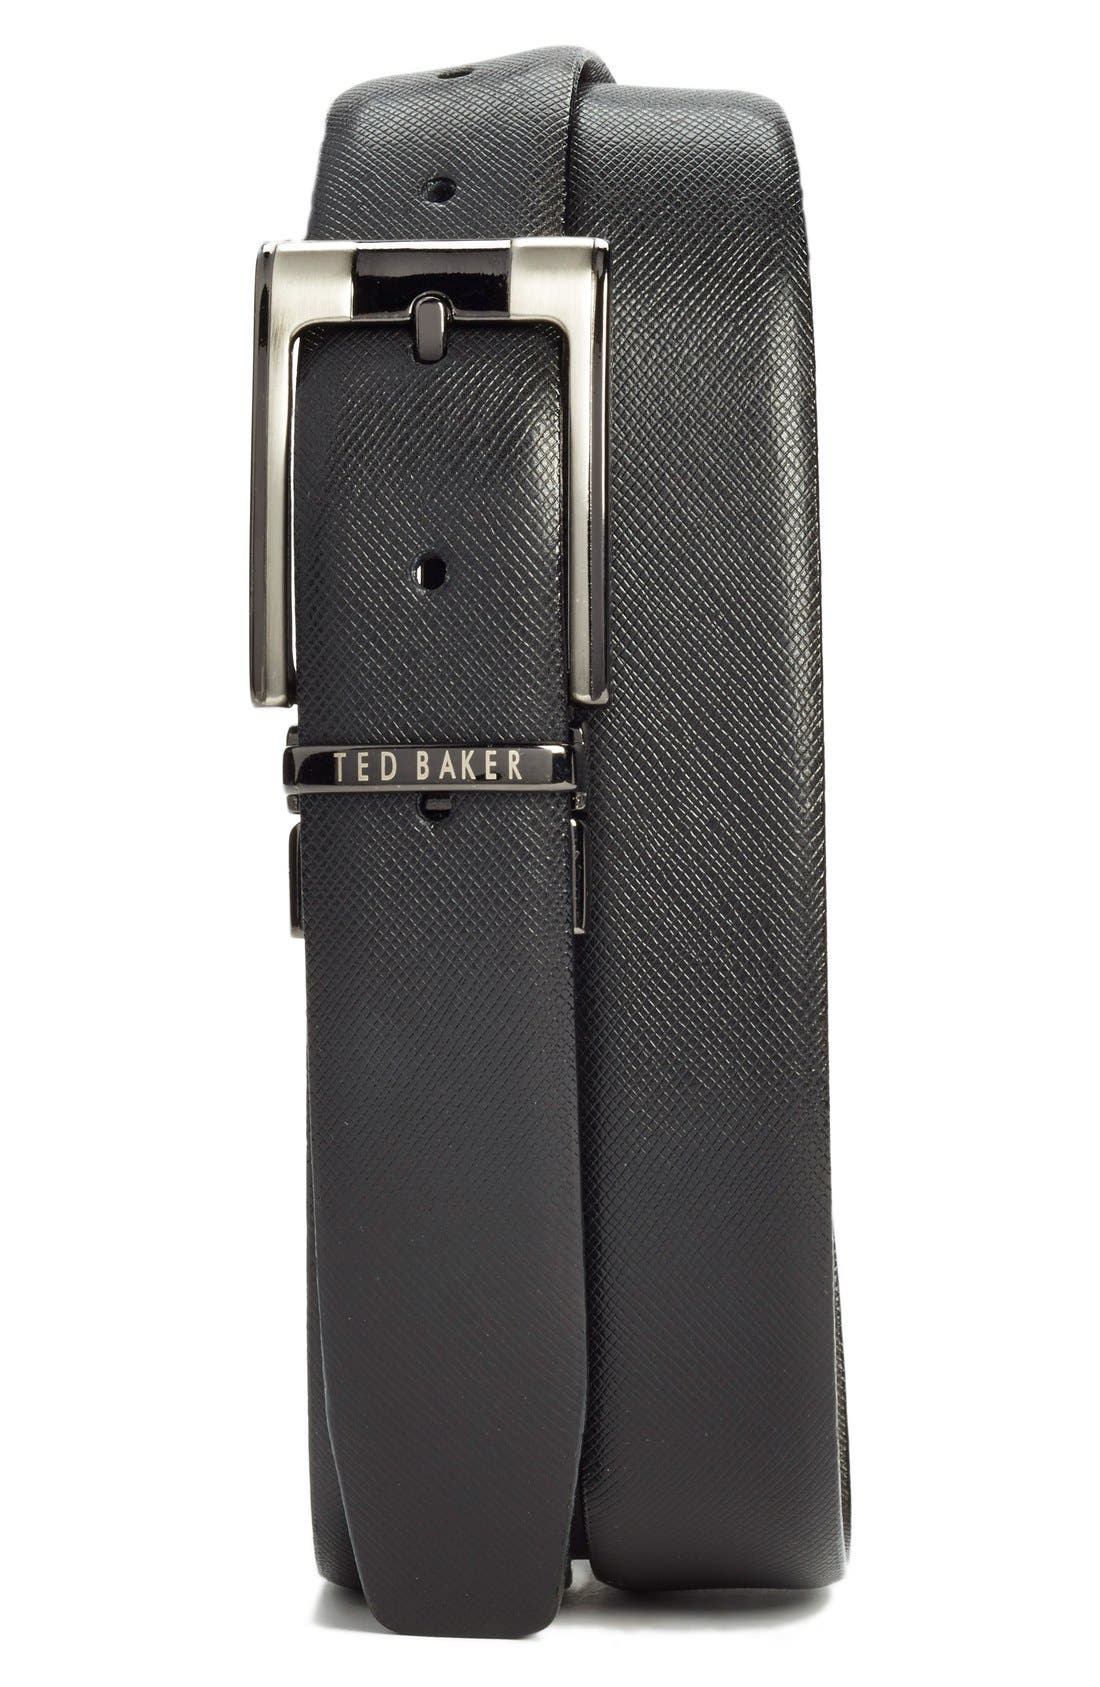 TED BAKER LONDON, Reversible Leather Belt, Main thumbnail 1, color, BLACK/ BROWN